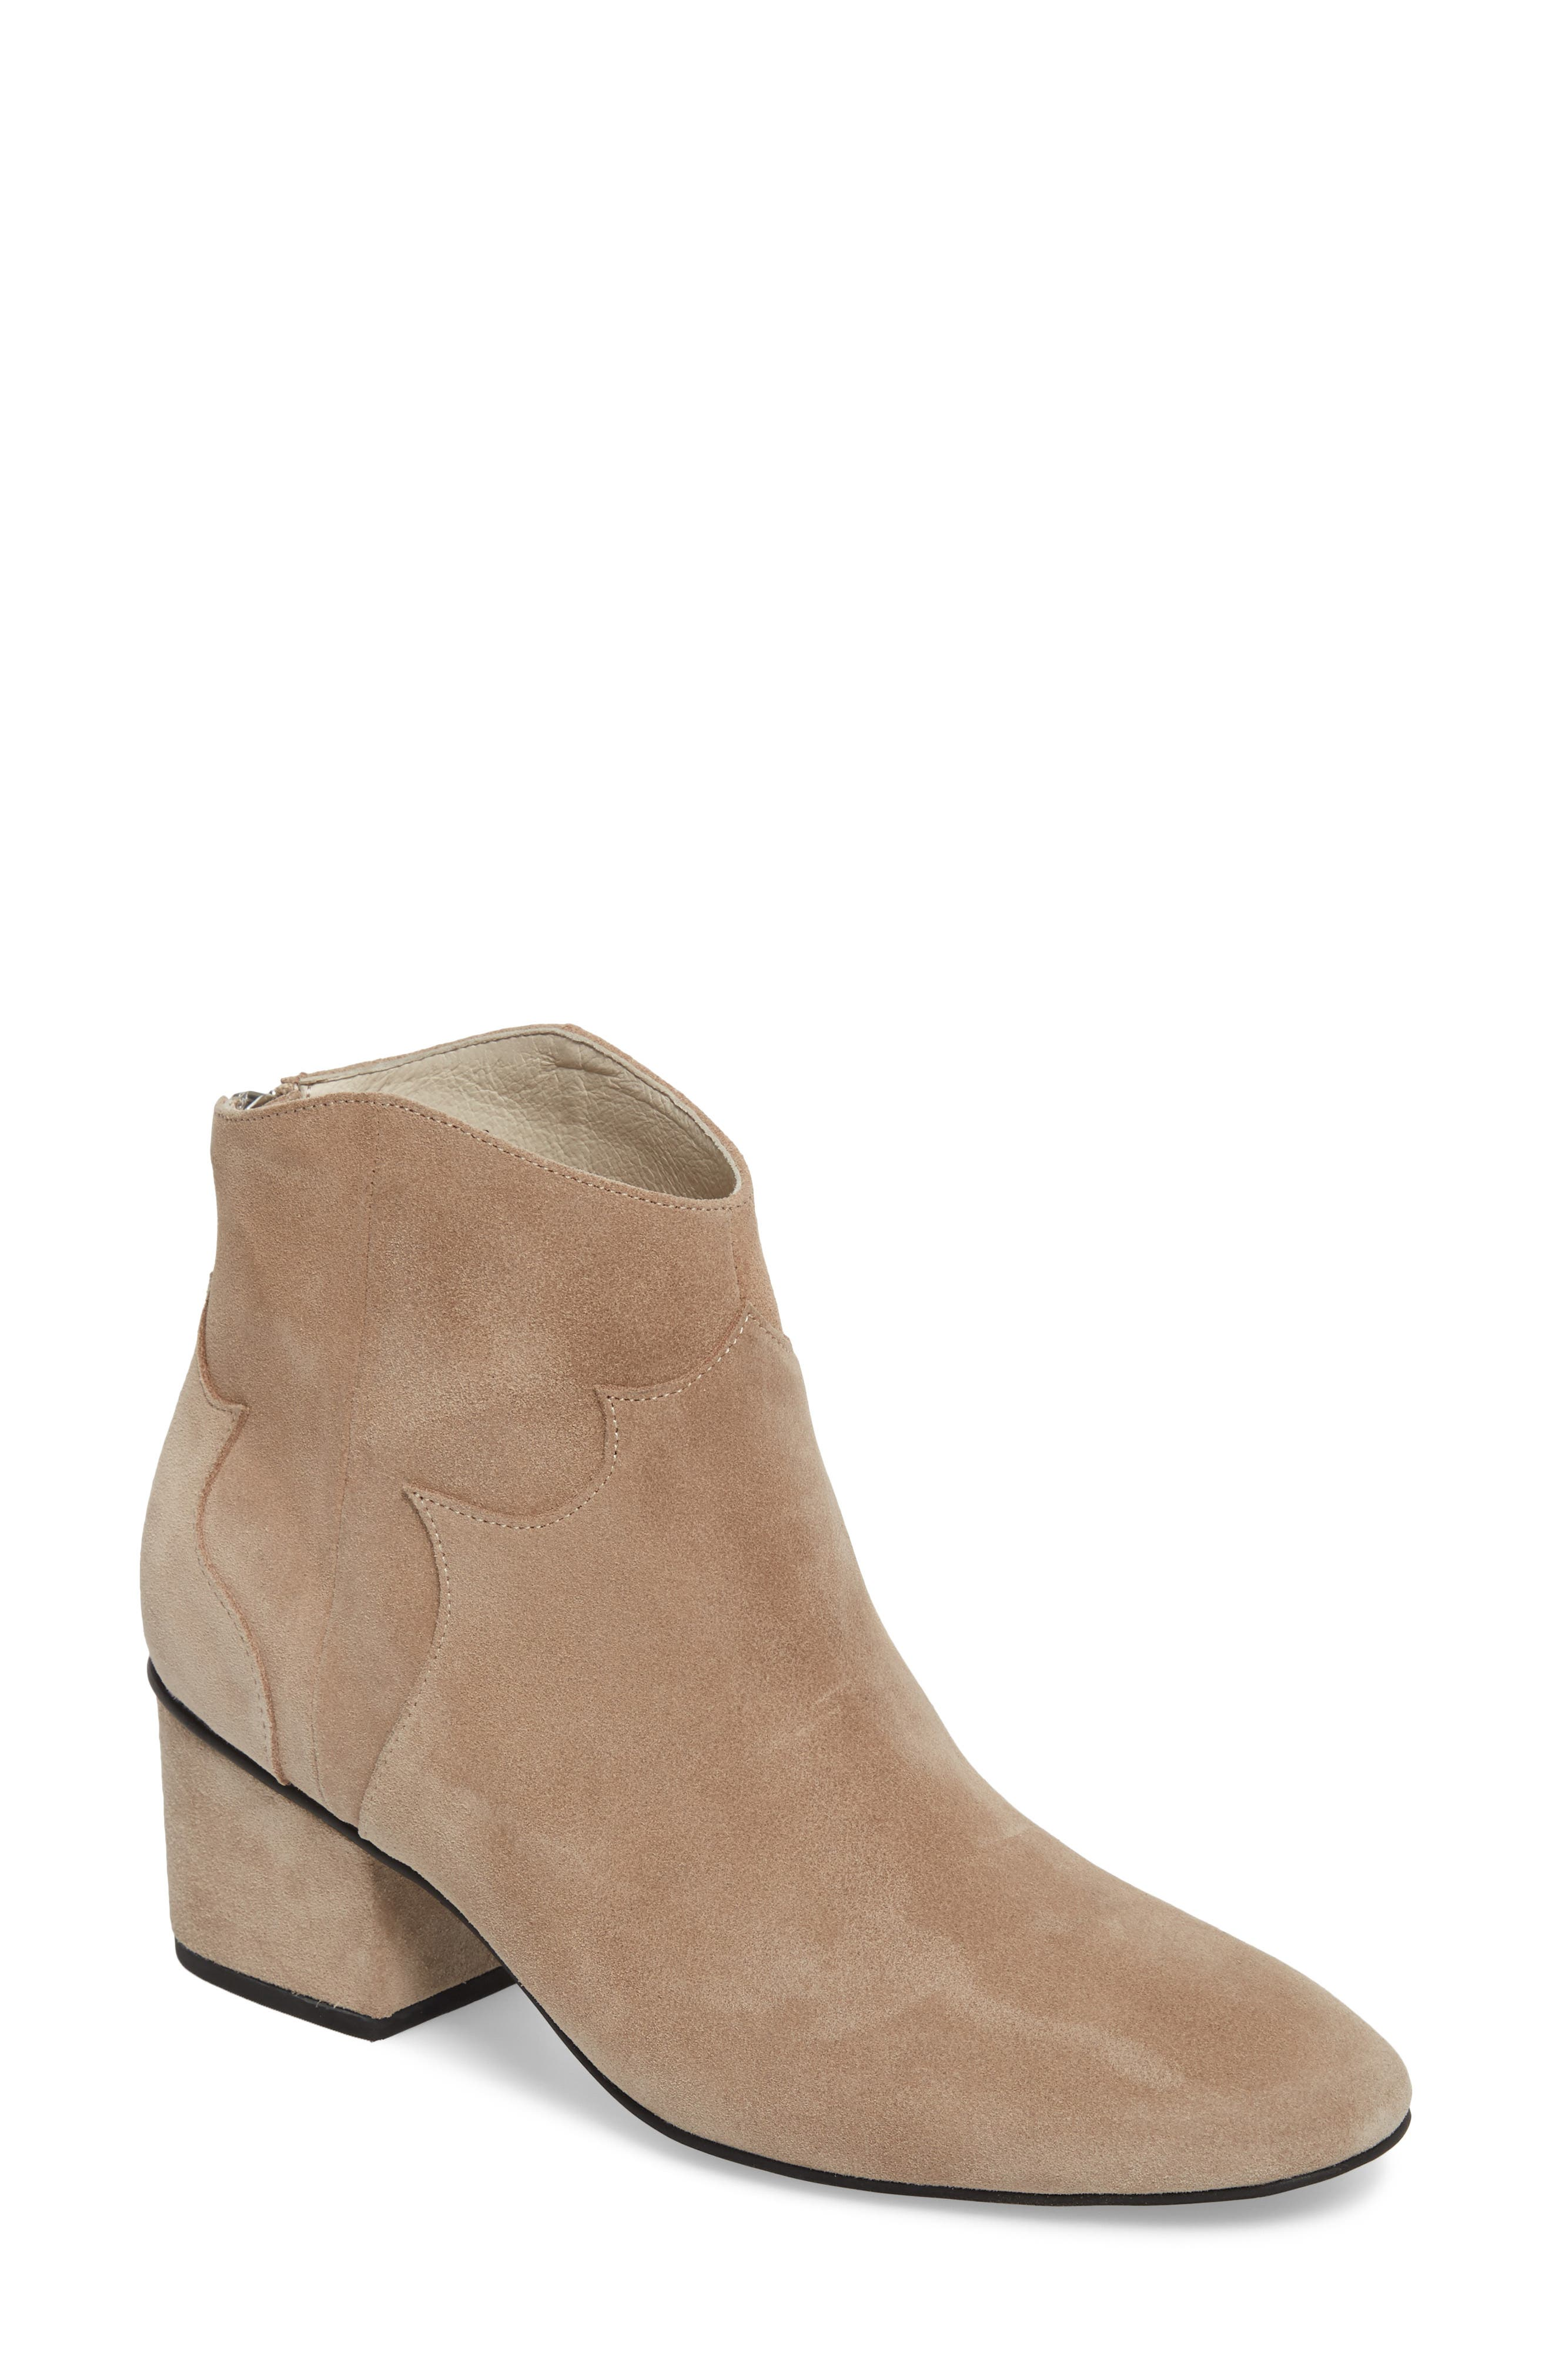 Texan Arched Bootie,                         Main,                         color, Desert Suede